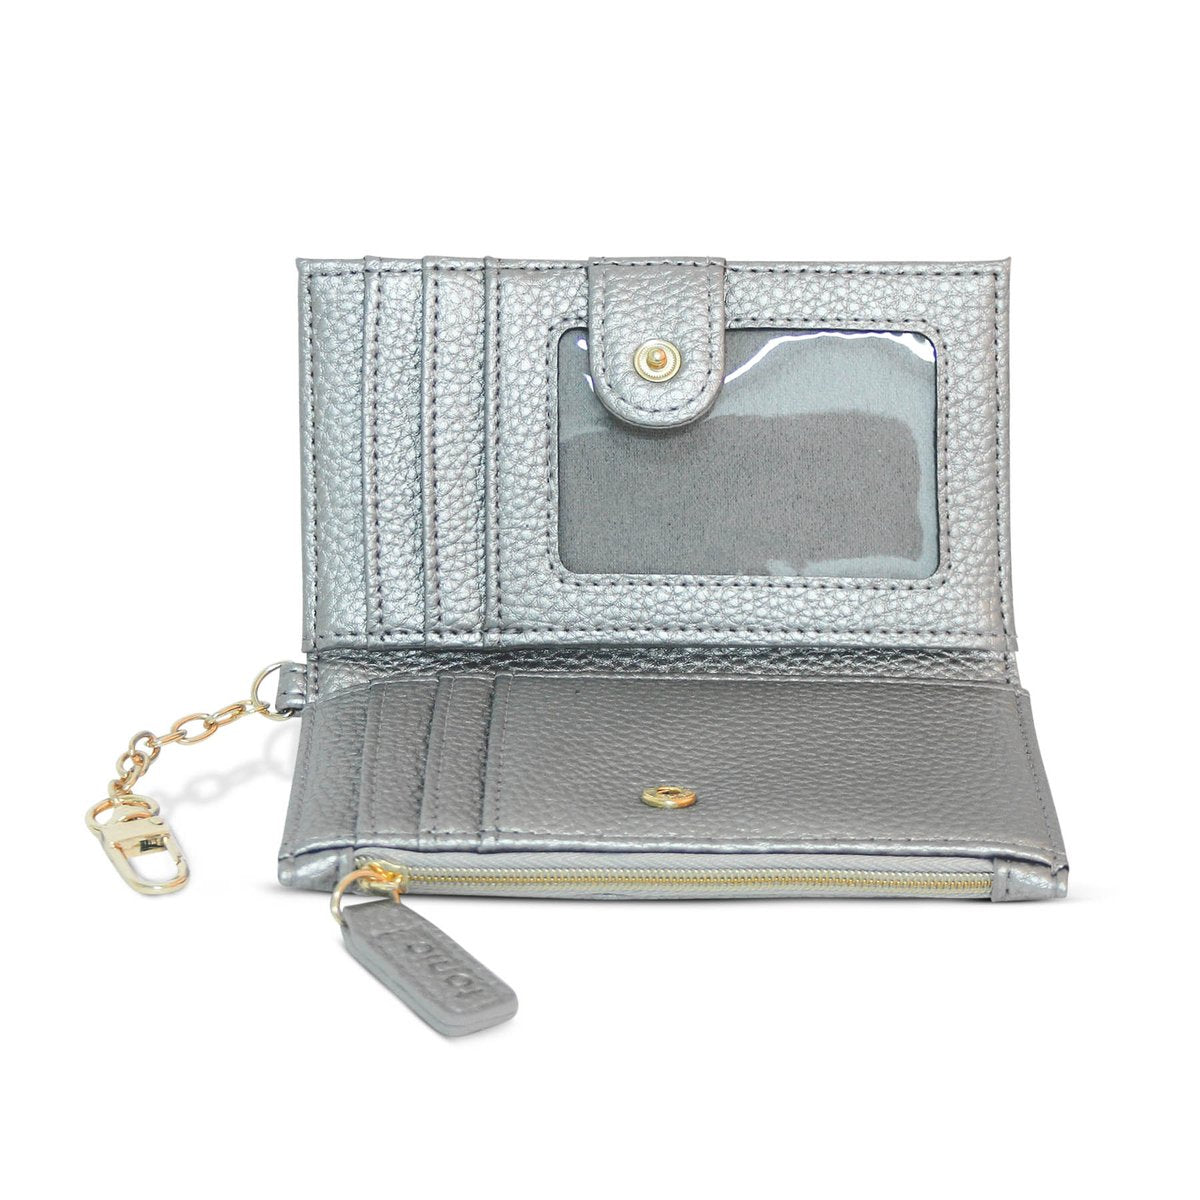 Tonic Luxe Keychain Wallet - Silver